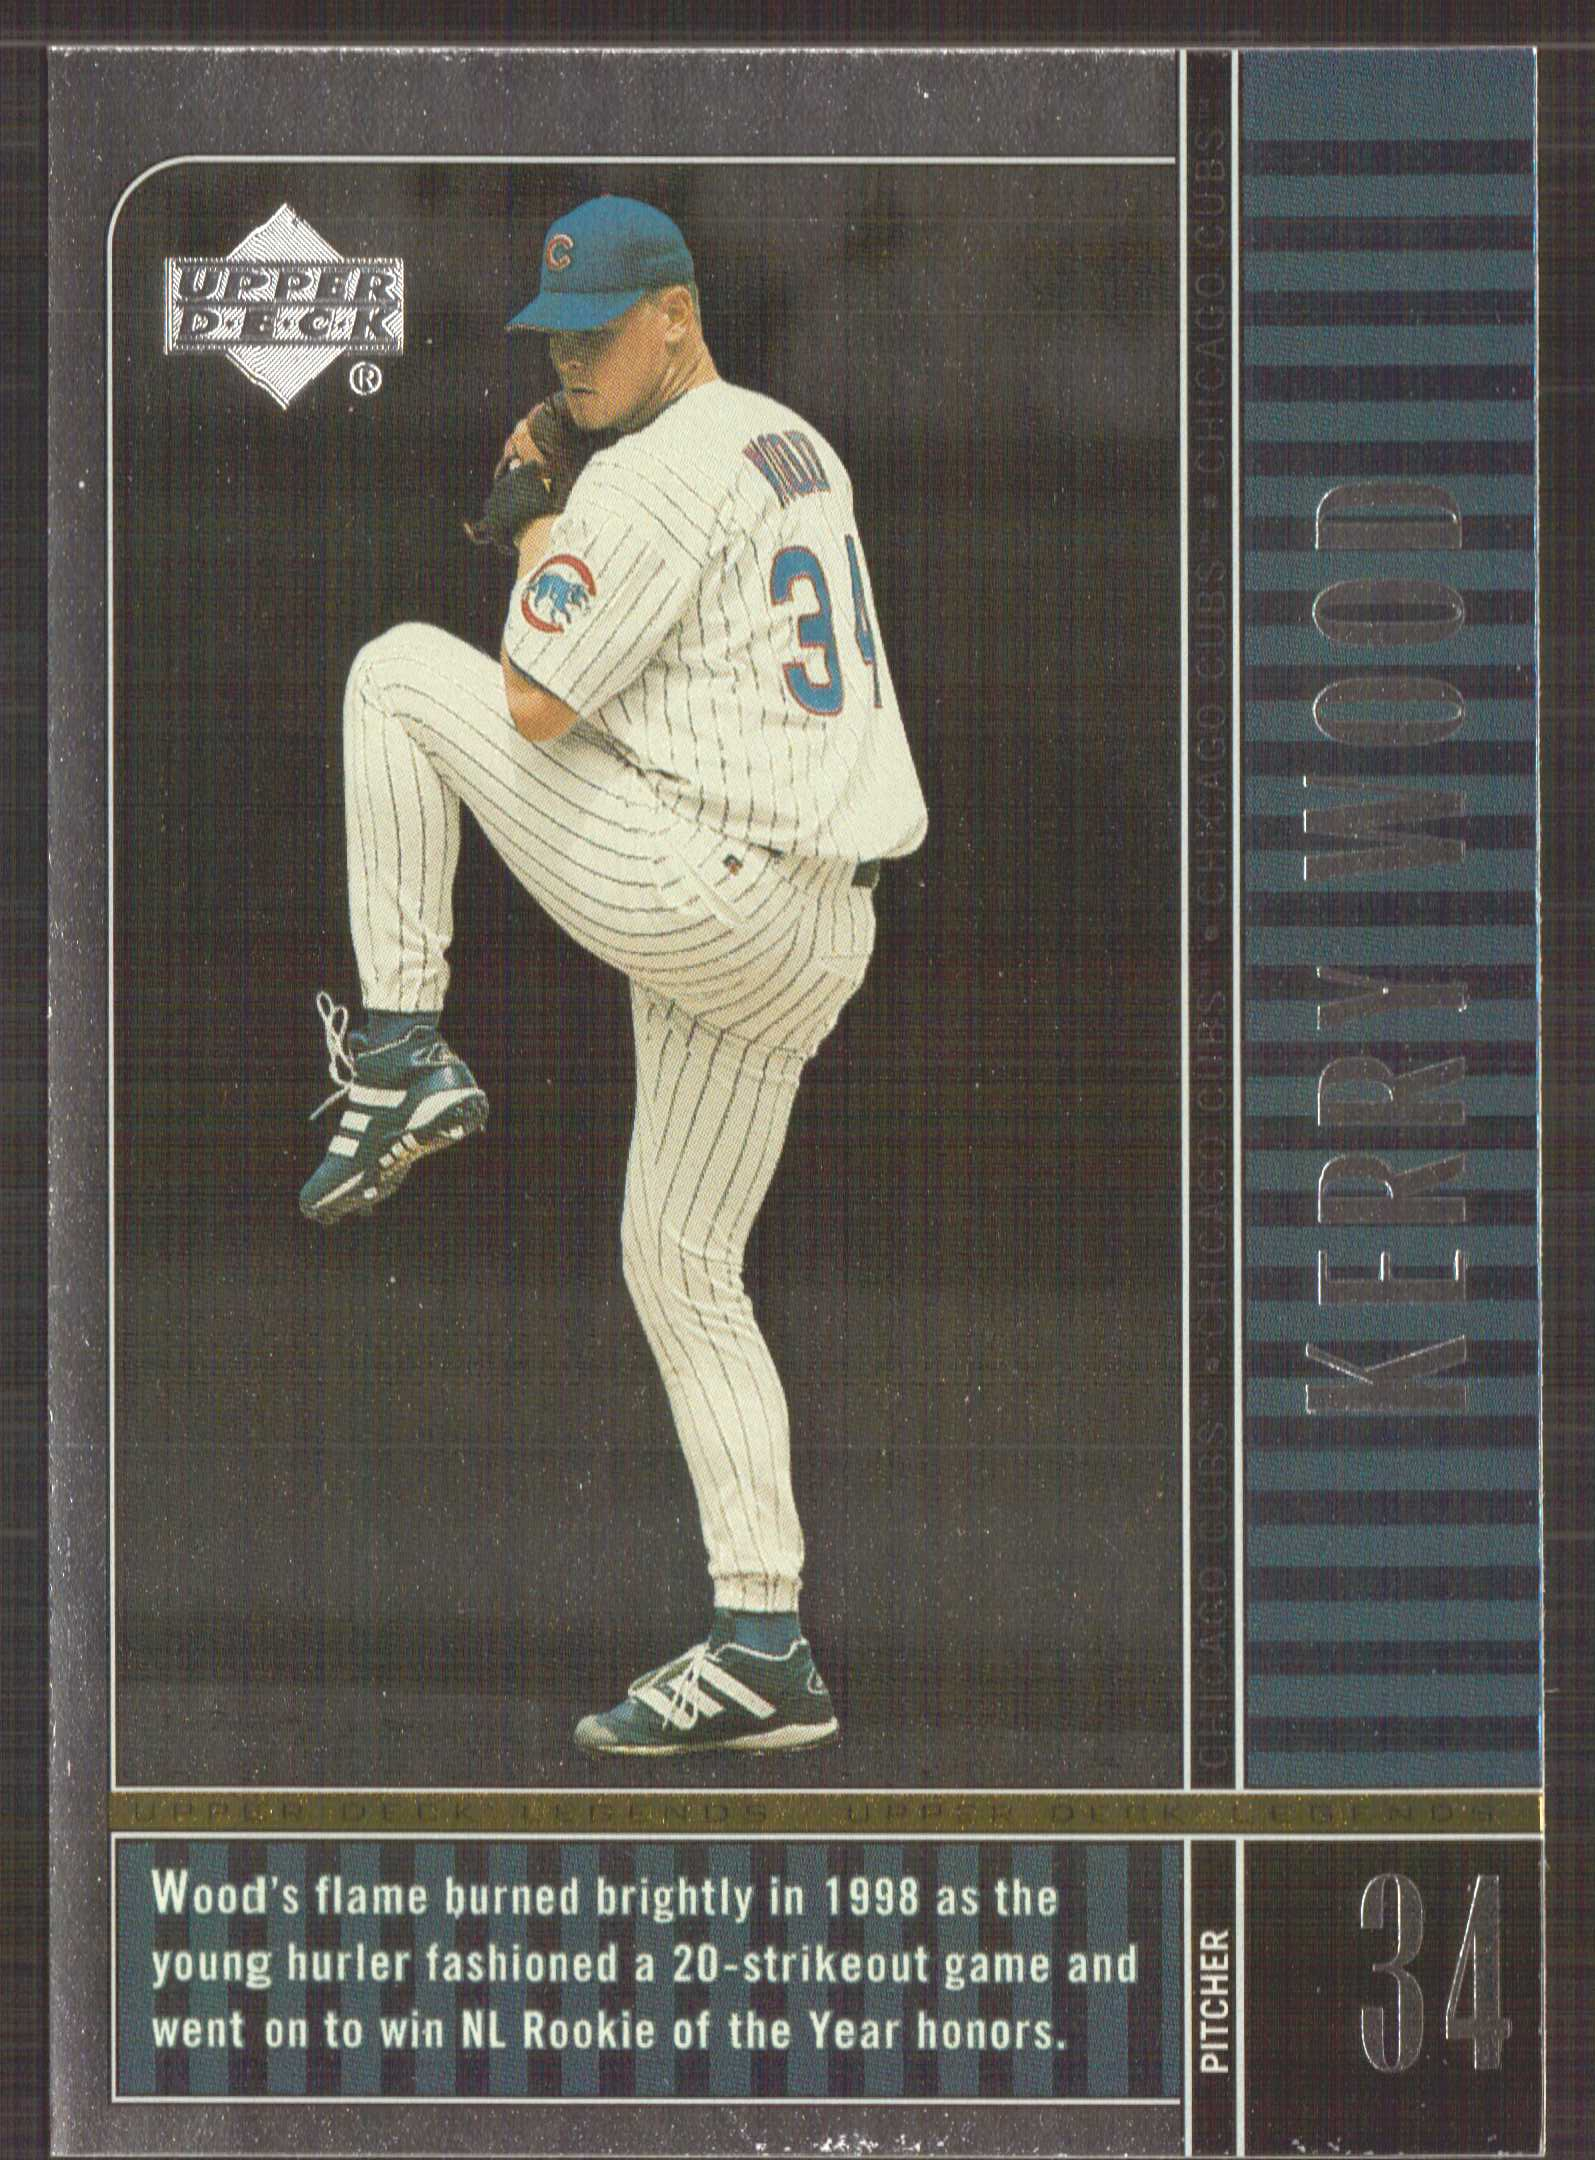 2000 Upper Deck Legends #20 Kerry Wood